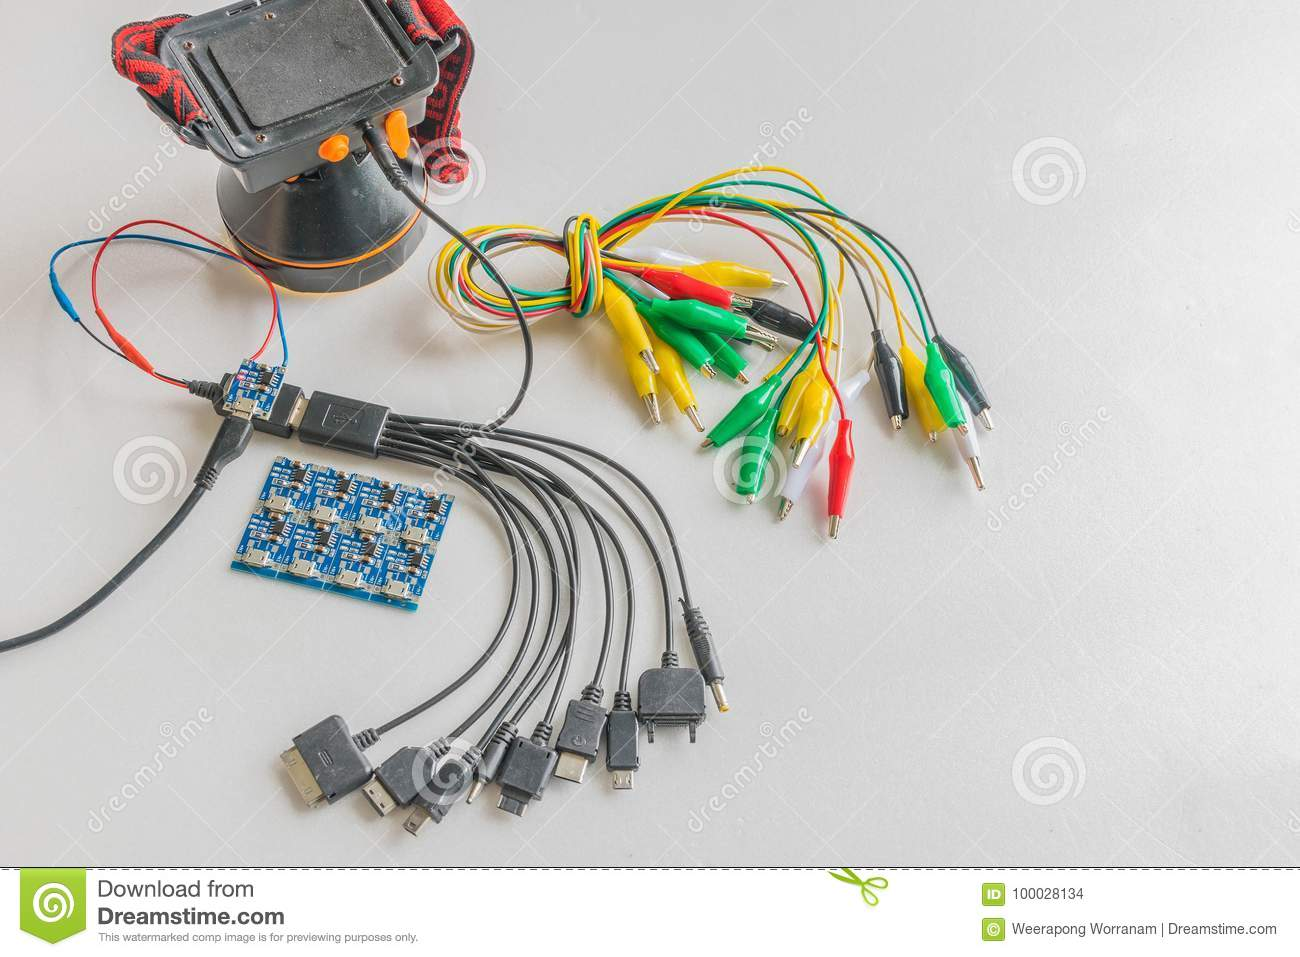 Soft Focus The Multipurpose Battery Charger Circuit Board Power Electronic Wiring Cord Mechanic